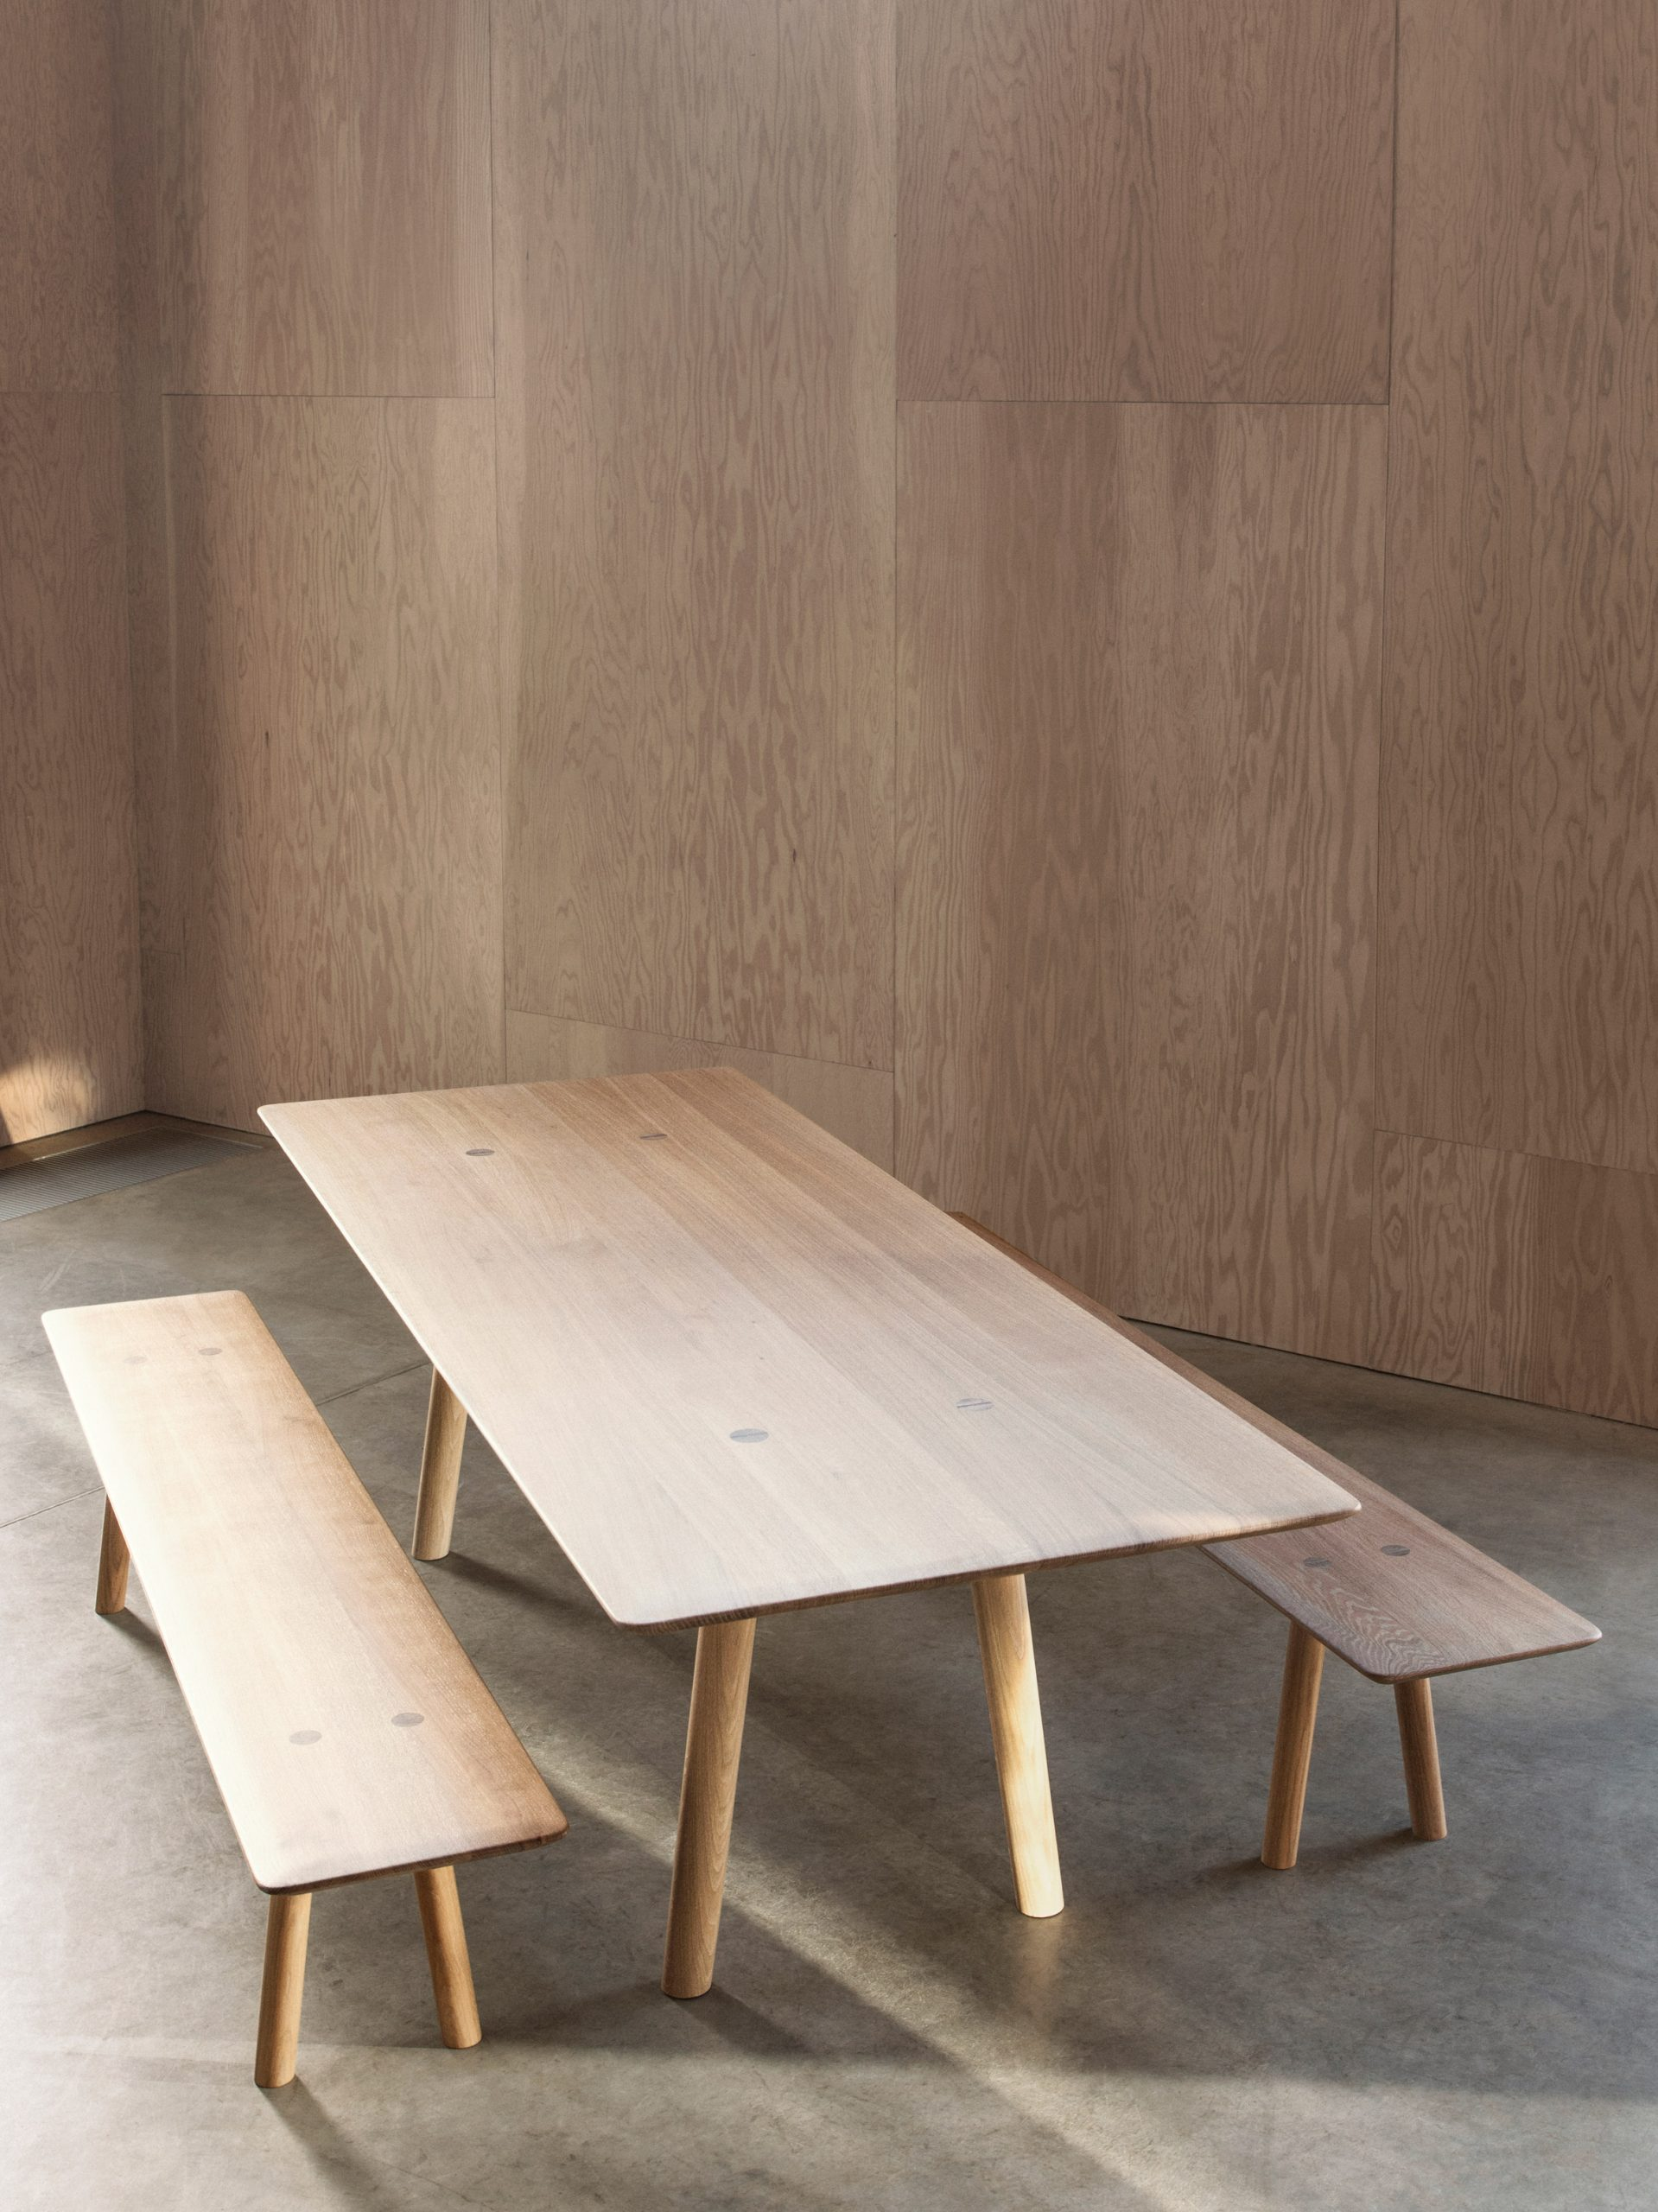 Solid wood OVO furniture by Benchmark and Foster + Partners